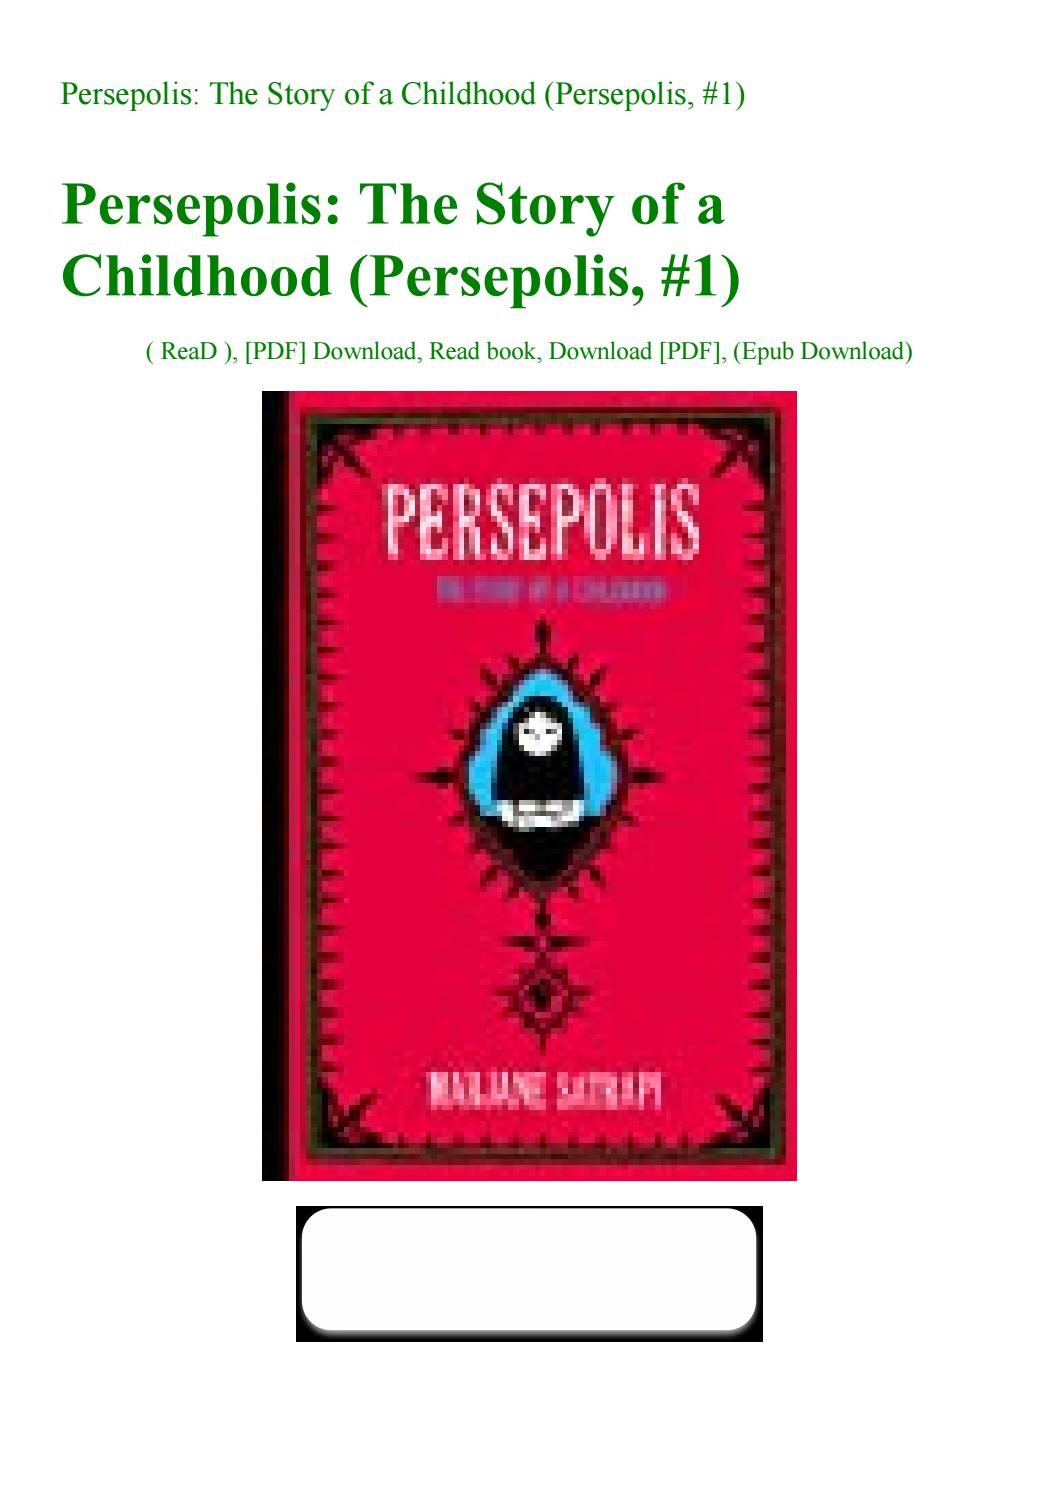 Persepolis The Story Of A Childhood Persepolis 1 By Ojoj7 Issuu